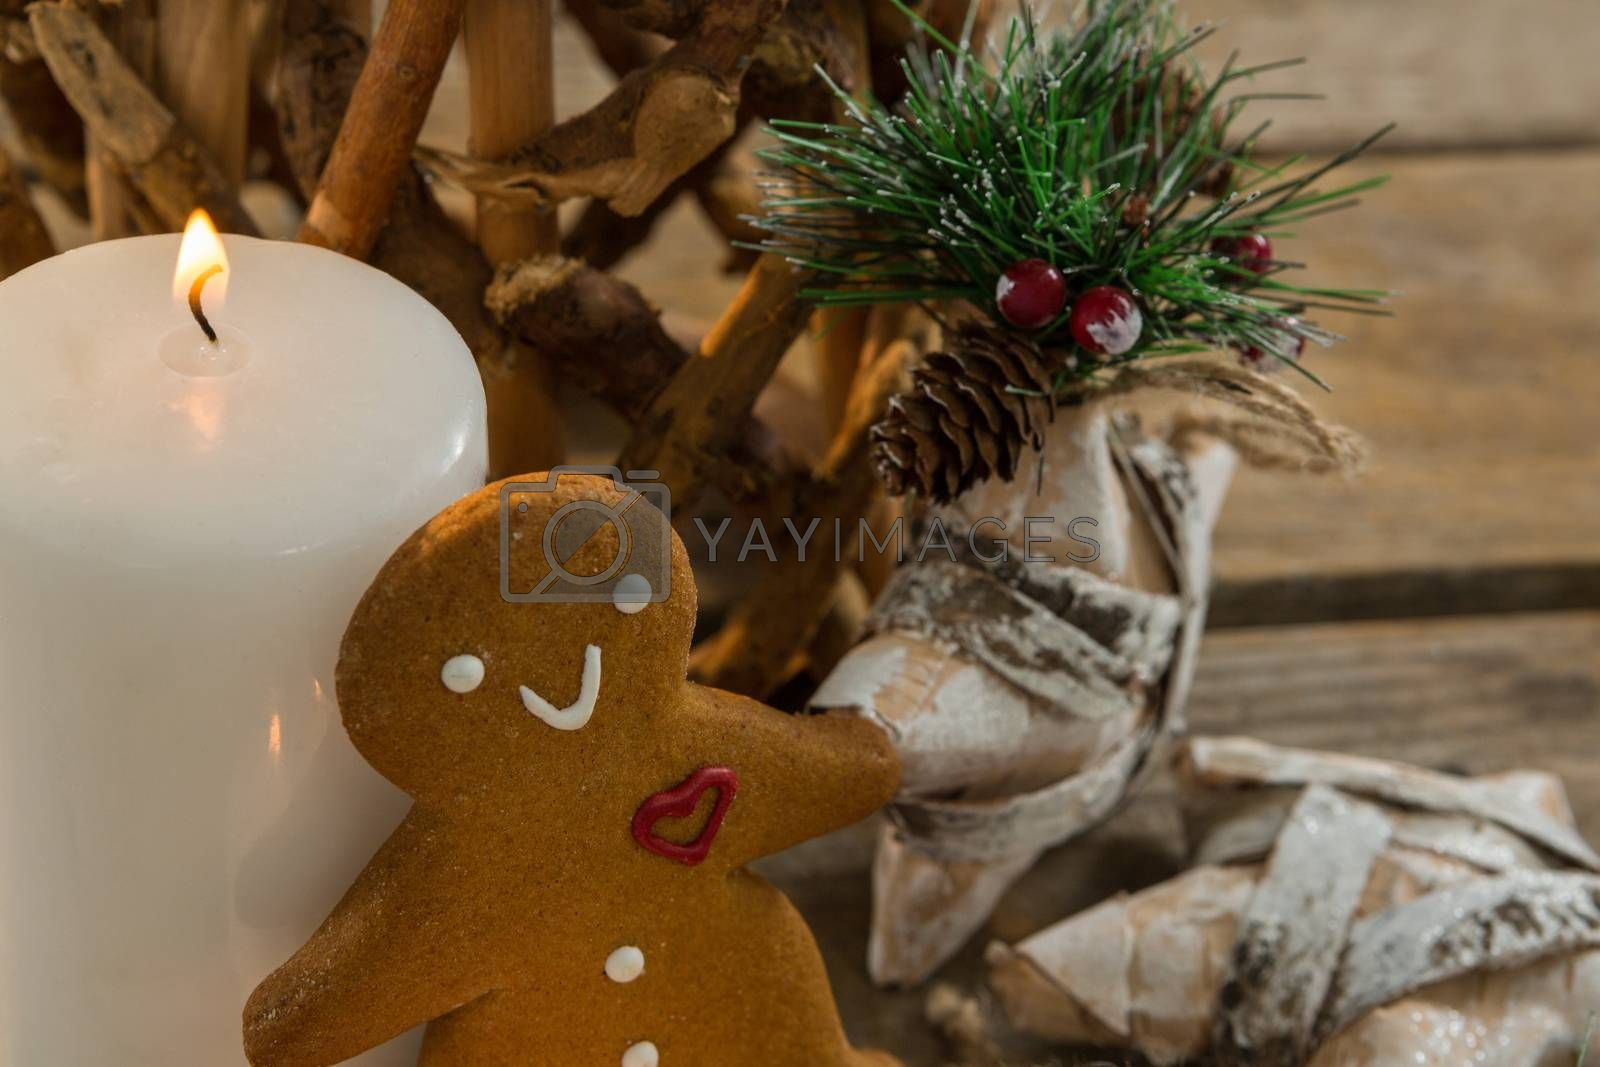 Gingerbread cookie by illuminated candle and star shape decorating by Wavebreakmedia